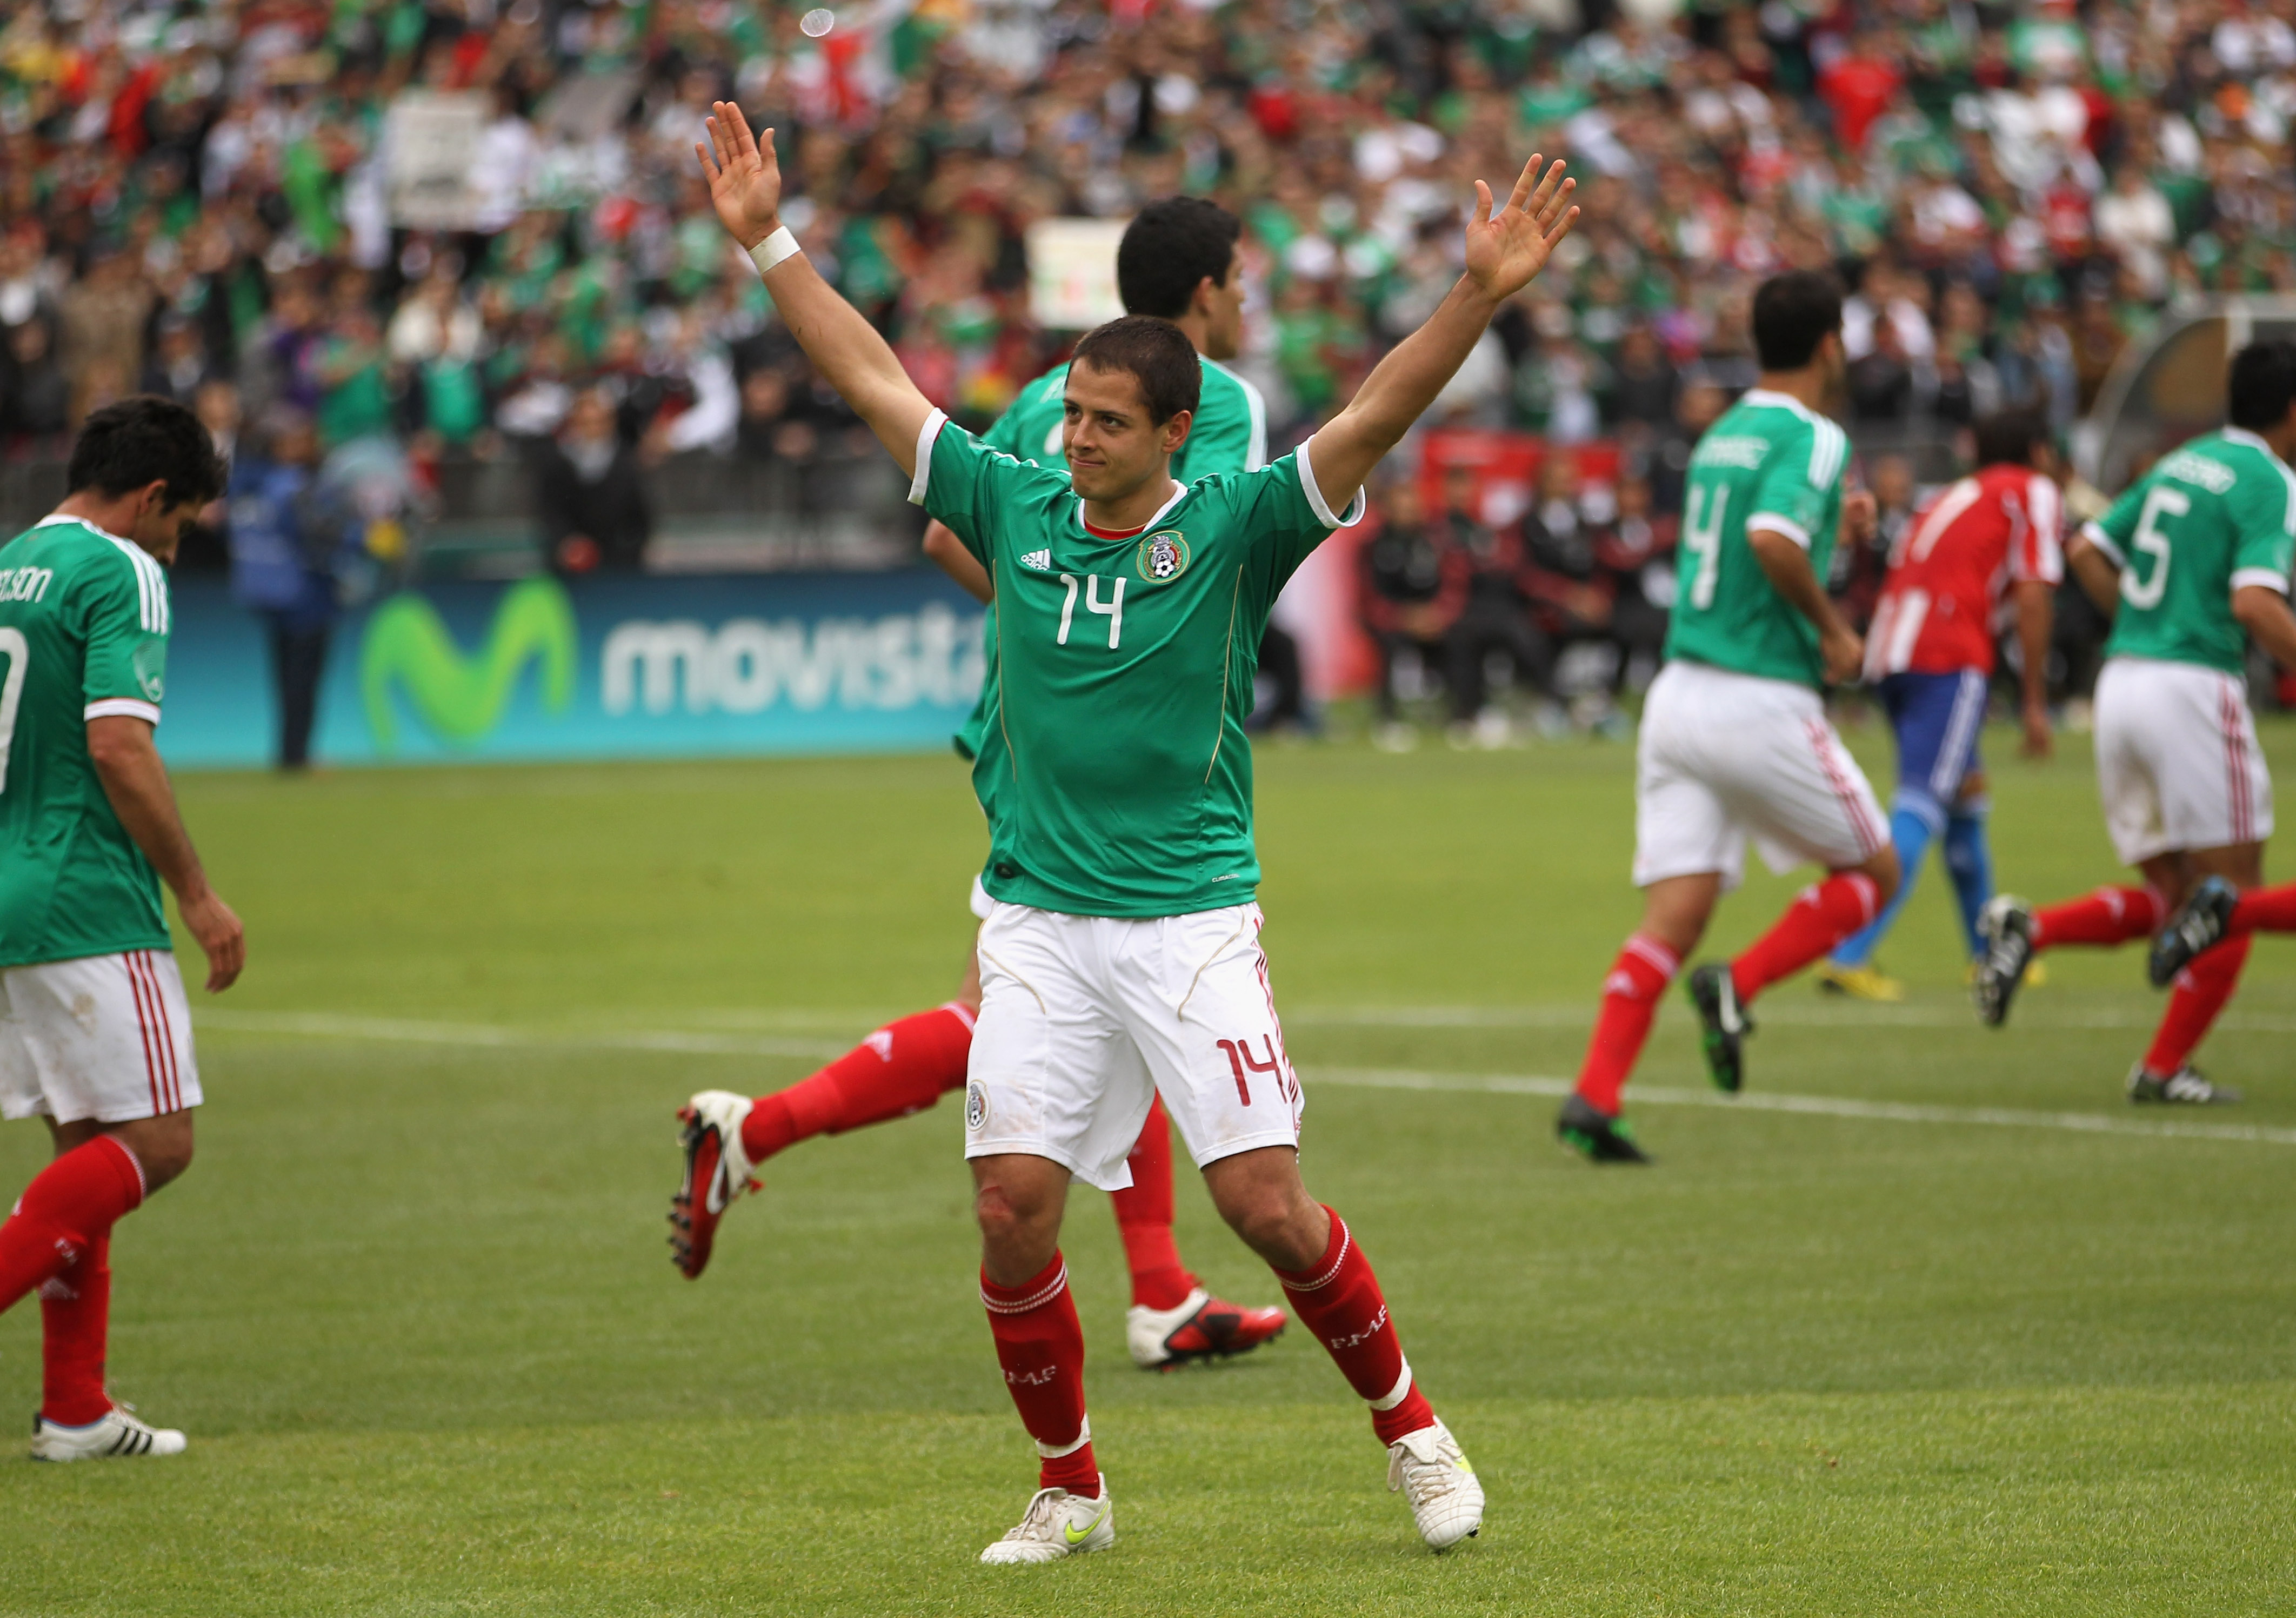 OAKLAND, CA - MARCH 26:  Javier 'Chicharito' Hernandez of Mexico waves to the crowd after he scored his second goal during their international friendly match against Paraguay at Oakland-Alameda County Coliseum on March 26, 2011 in Oakland, California.  (P